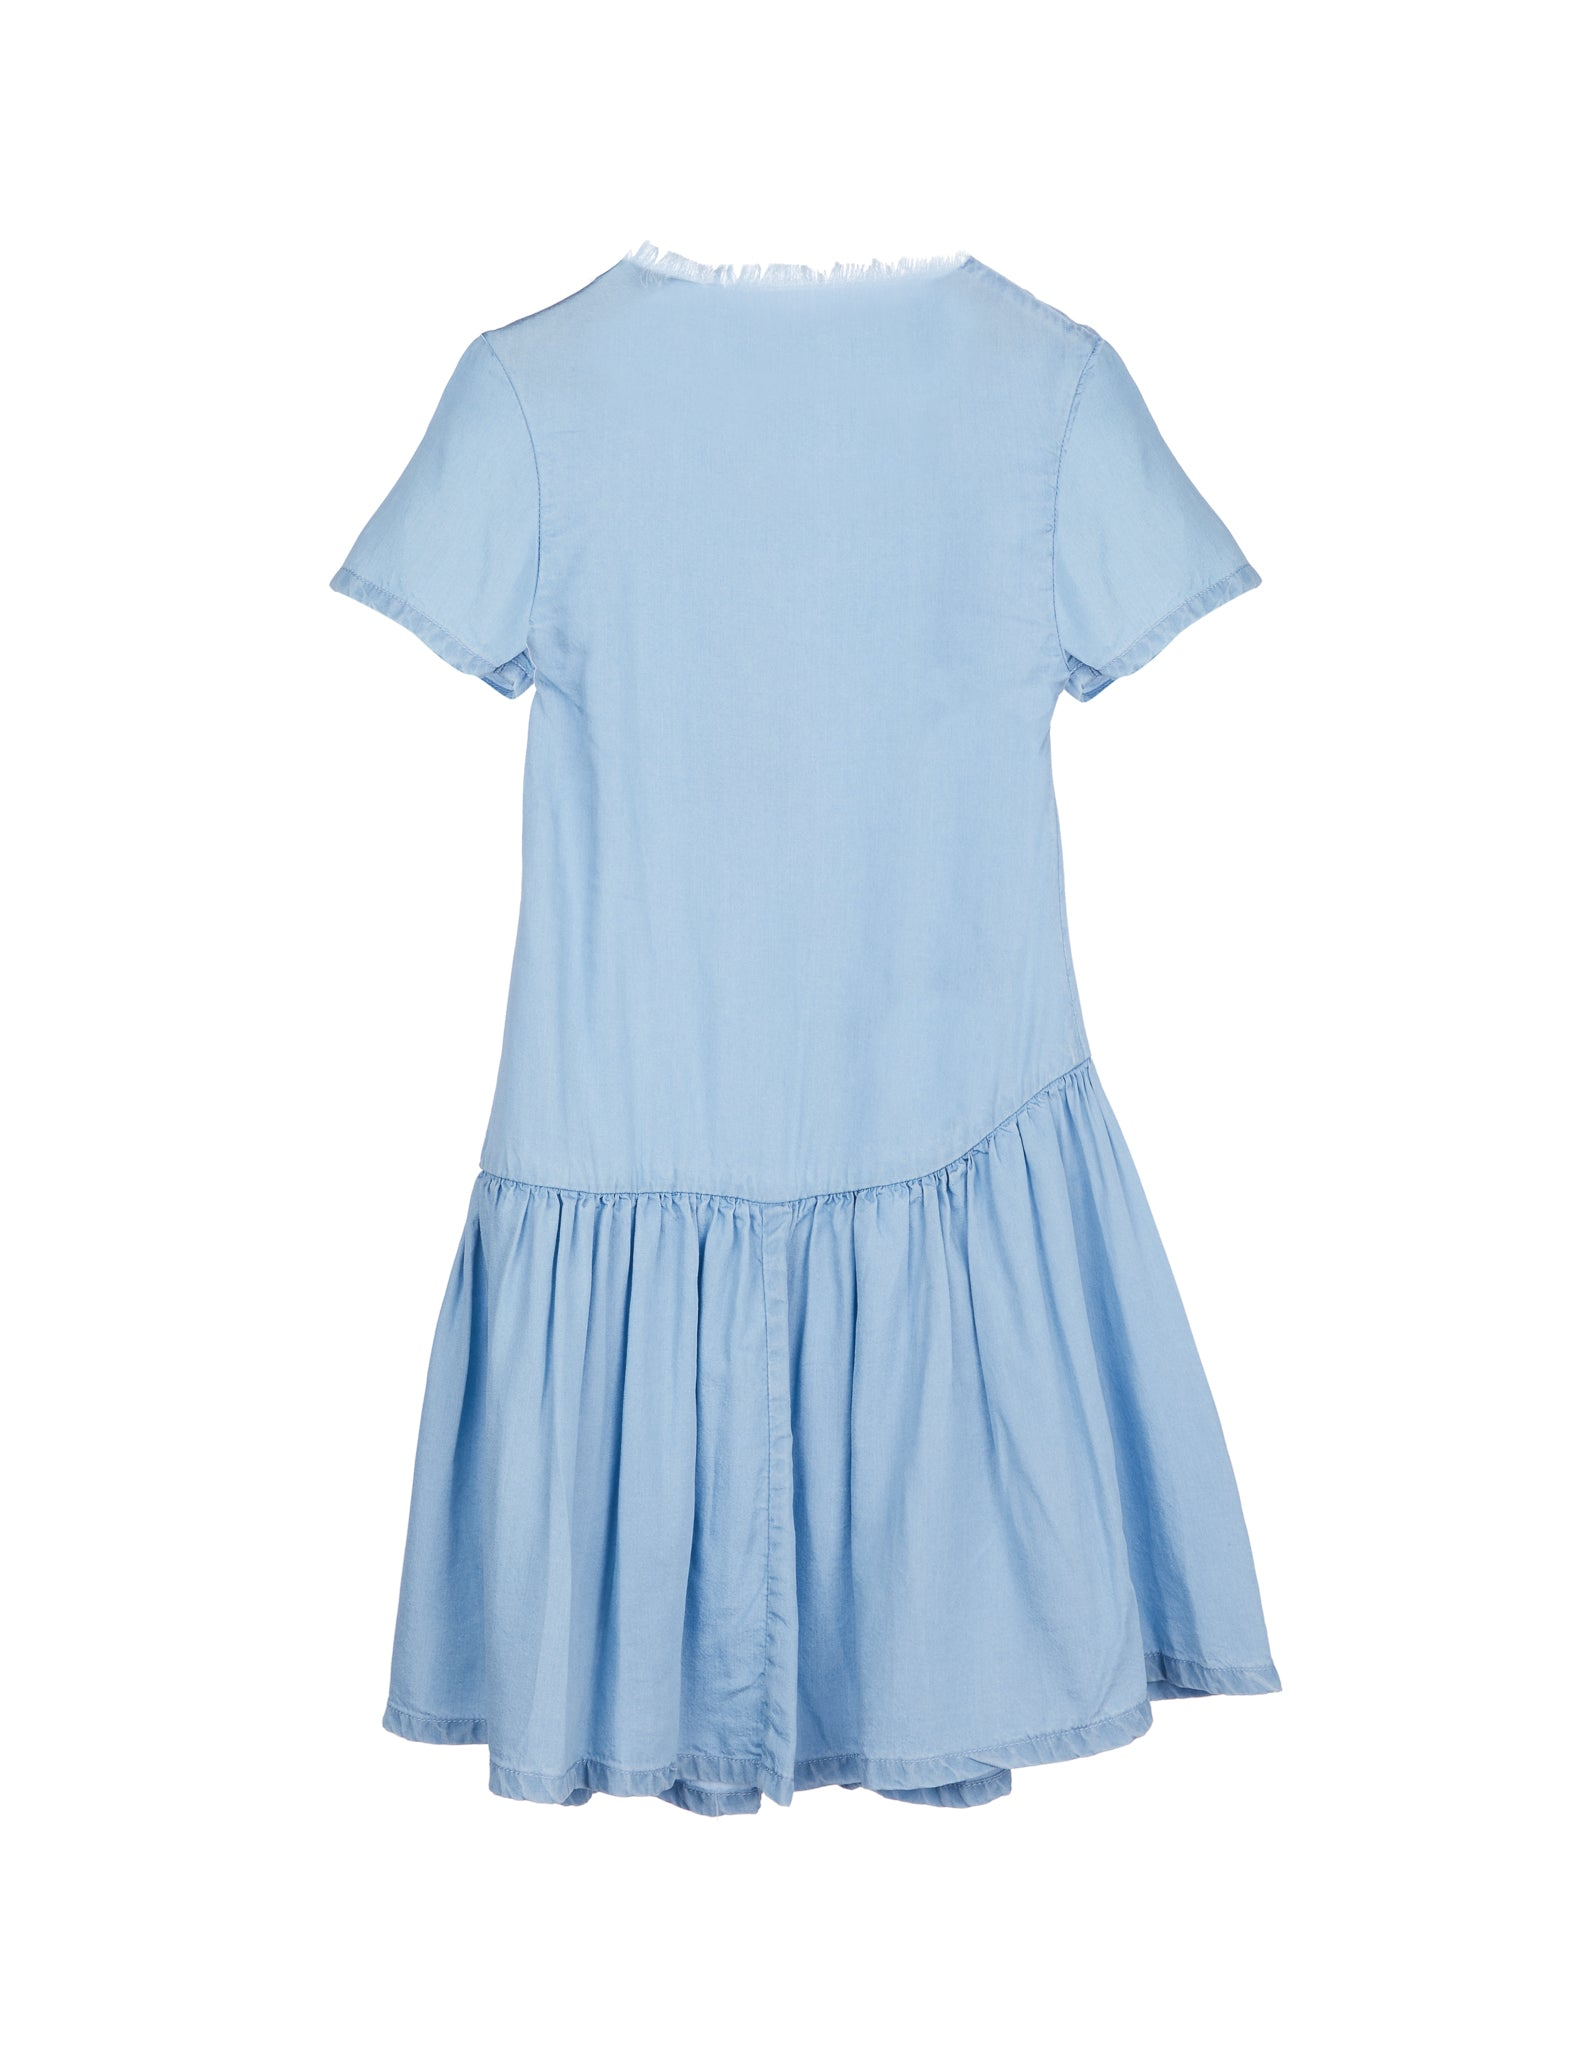 T-SHIRT DRESS WITH SEAMS AND GATHERS